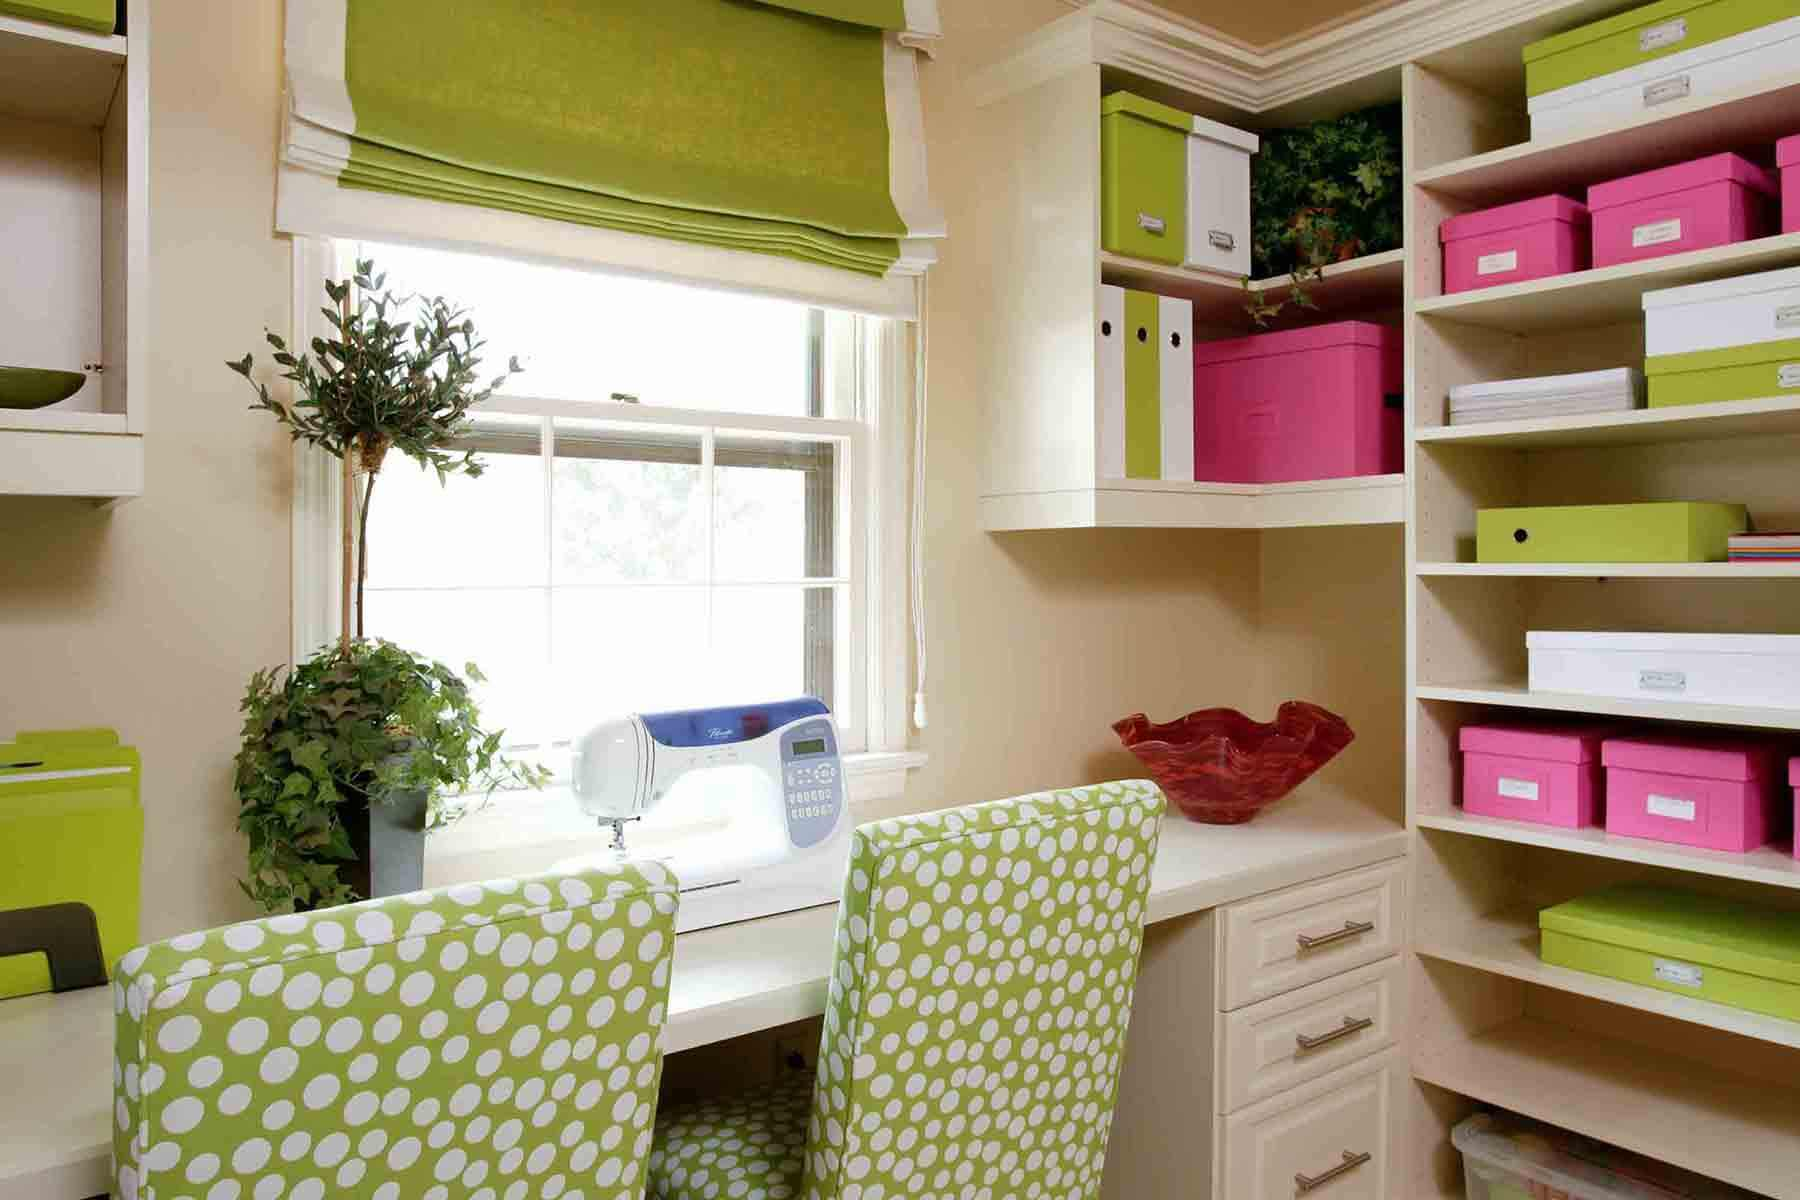 supply organization craf keeping decor reveal craft it room furniture and simple ideas supplies